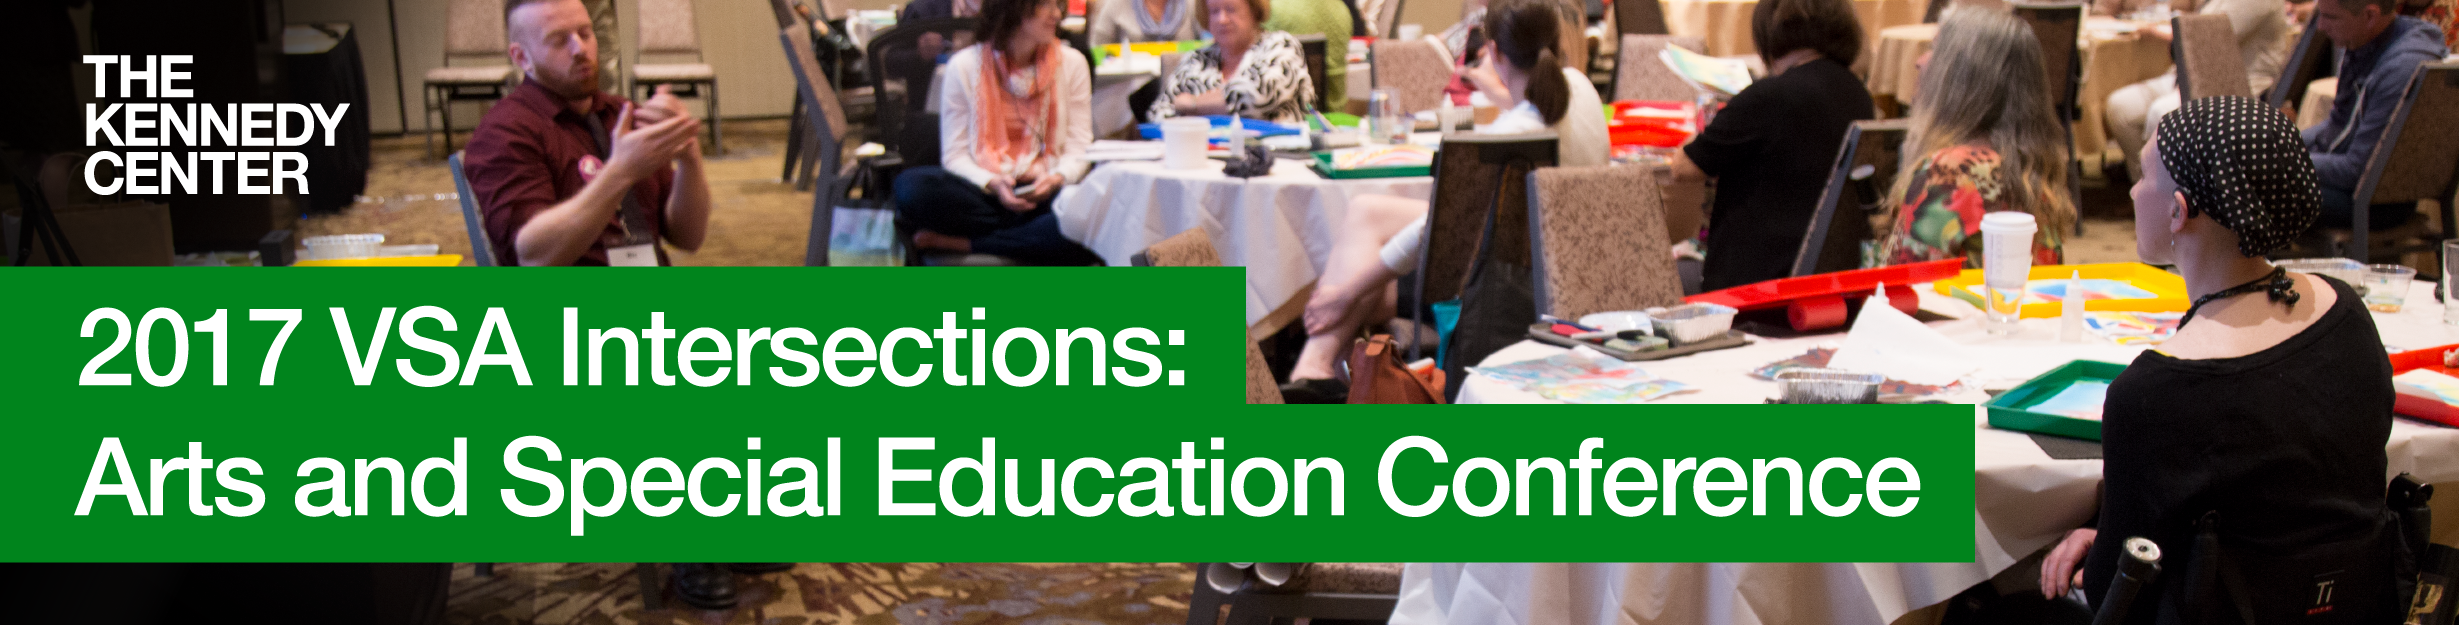 2017 VSA Intersections: Arts and Special Education Conference